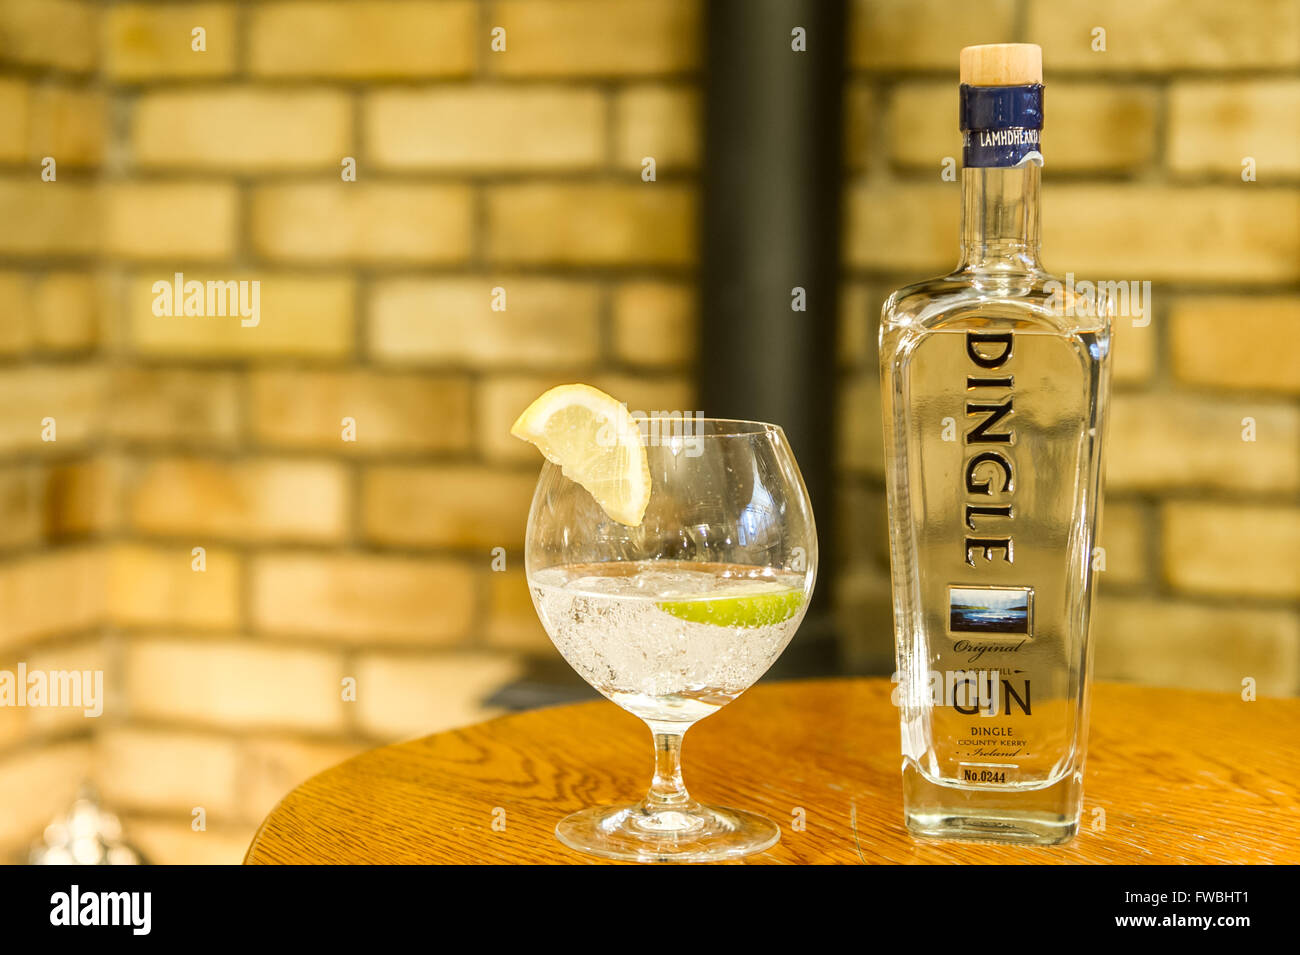 Bottle of Dingle Gin and a glass of gin with ice and lemon. - Stock Image